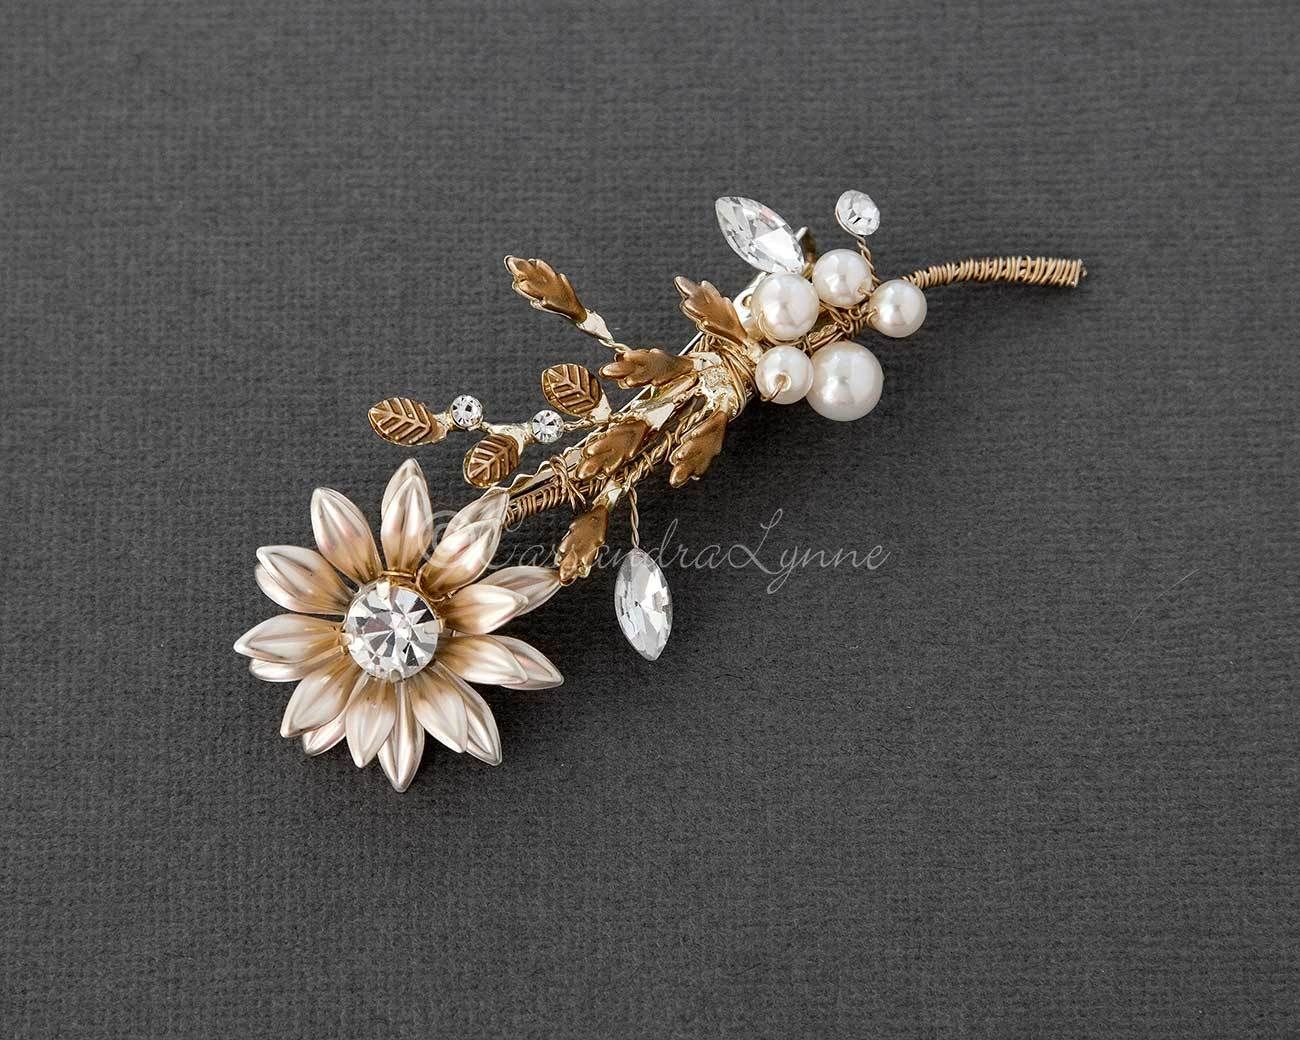 Small Flower Bridal Hair Clip with Pearls in Gold Bridal Hair